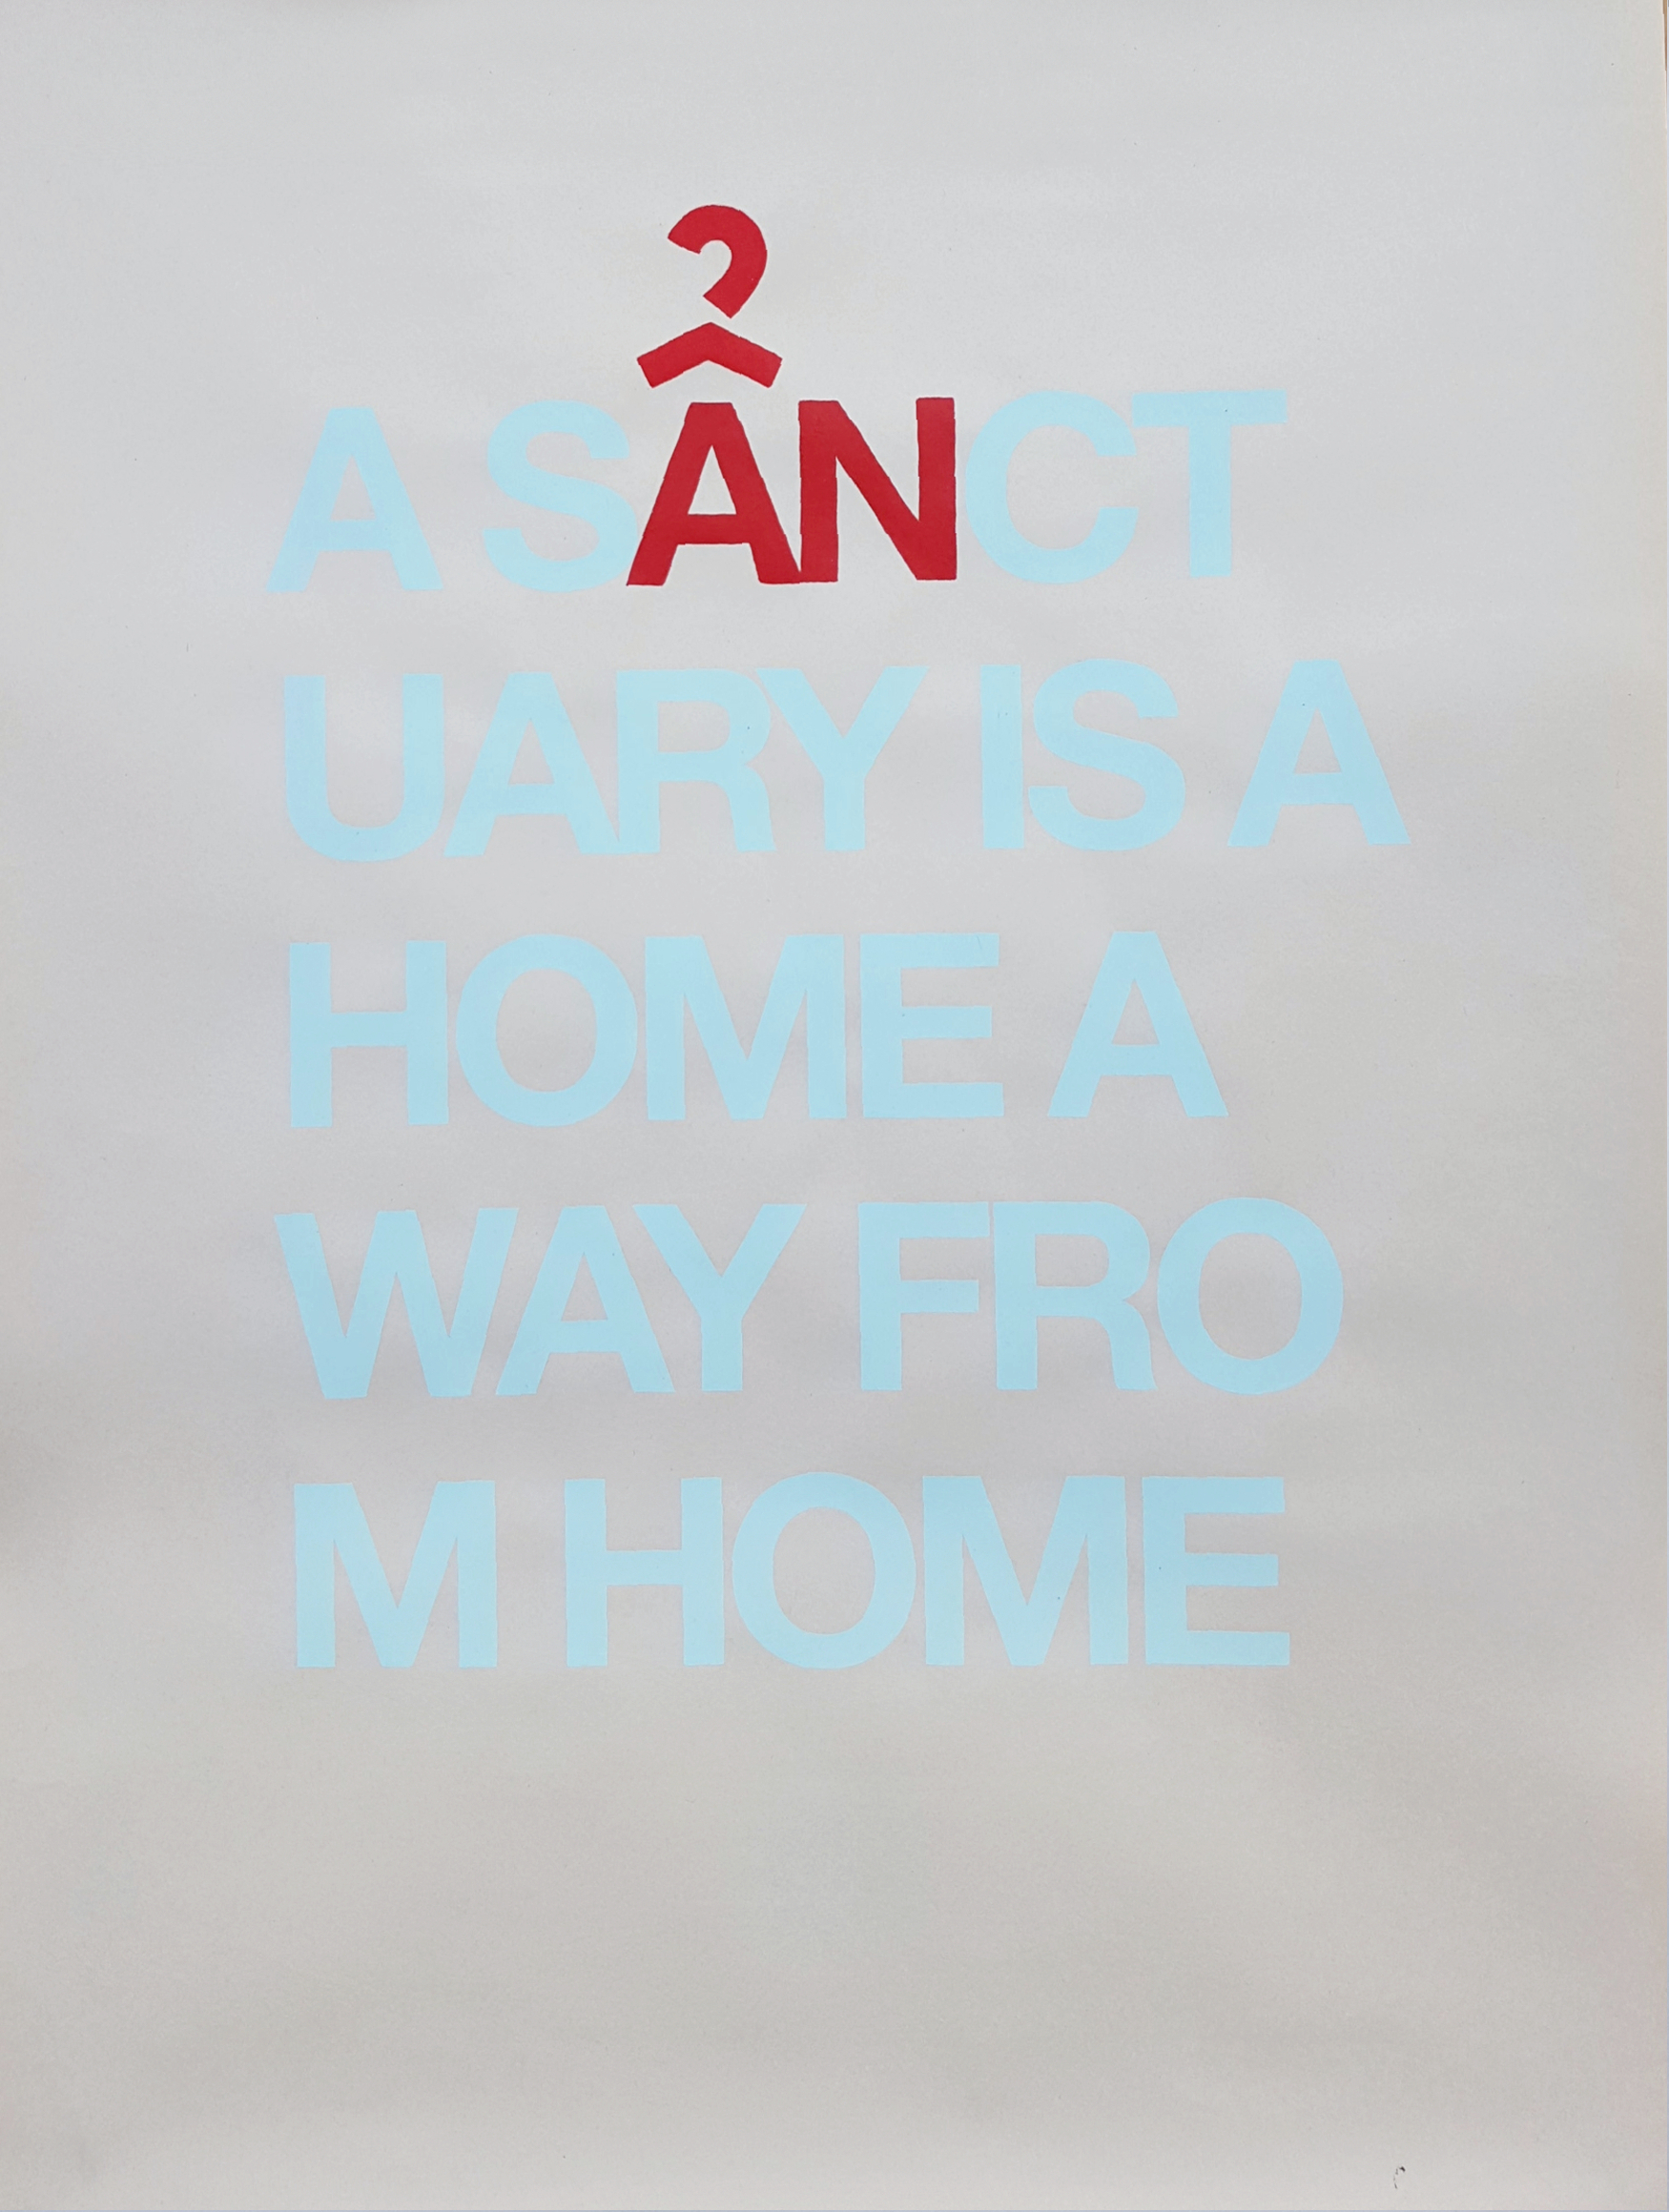 """A sẩnctuary is a home away from home"" poster"